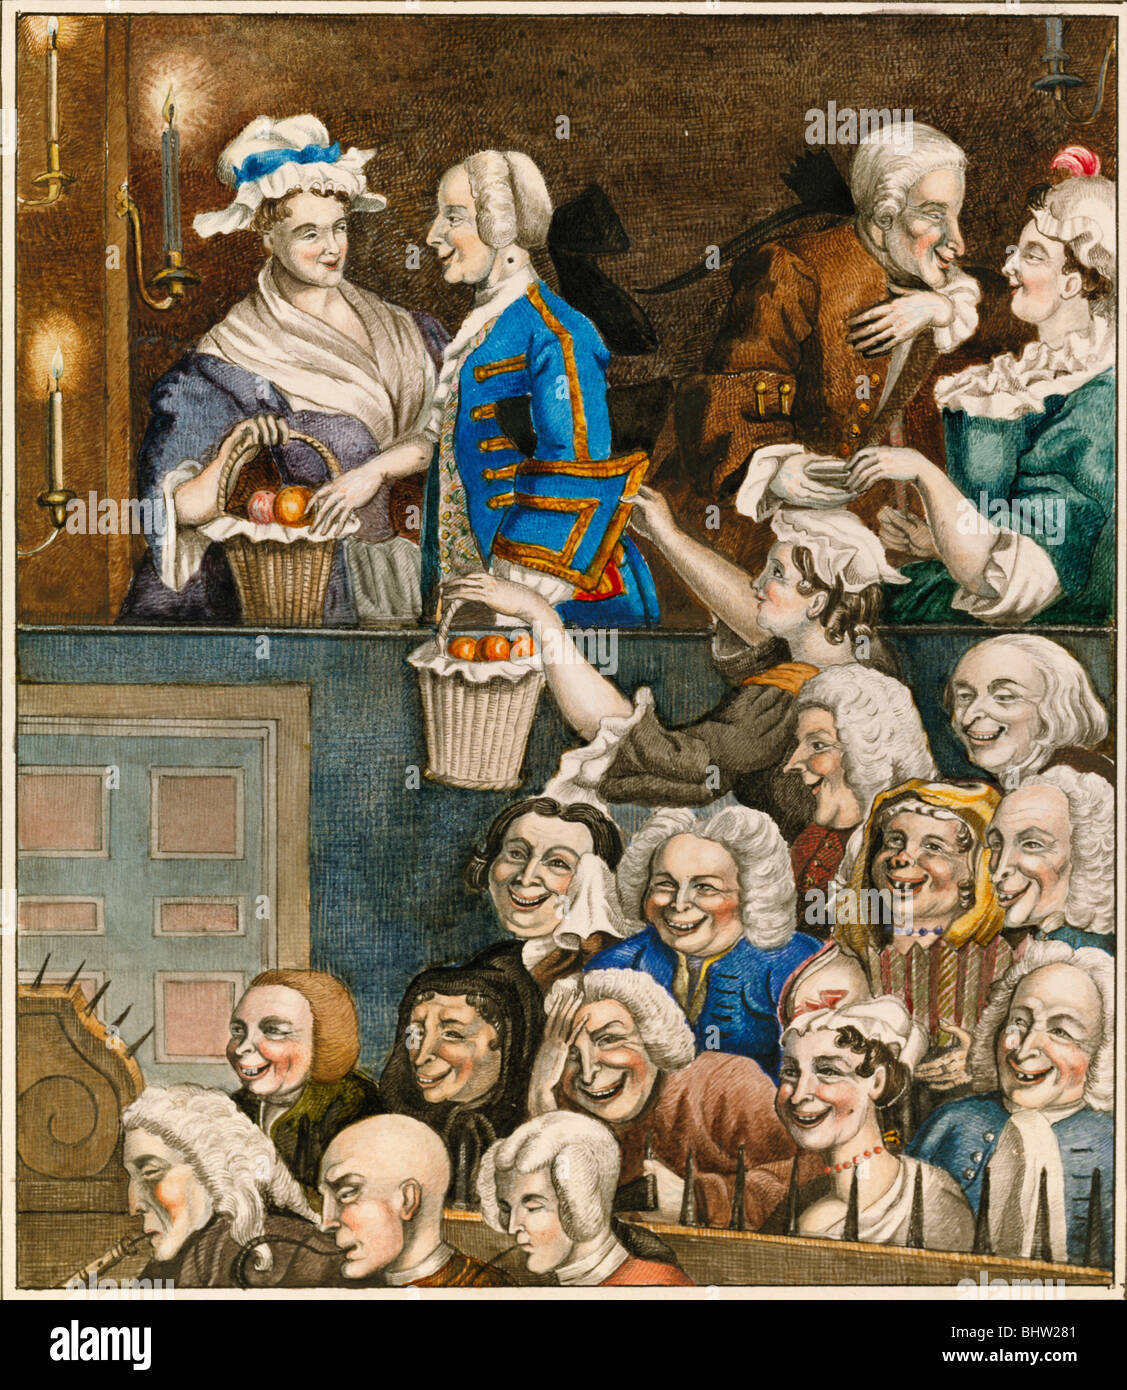 The Laughing Audience, by Edward Matthew Ward. England, 19th century - Stock Image